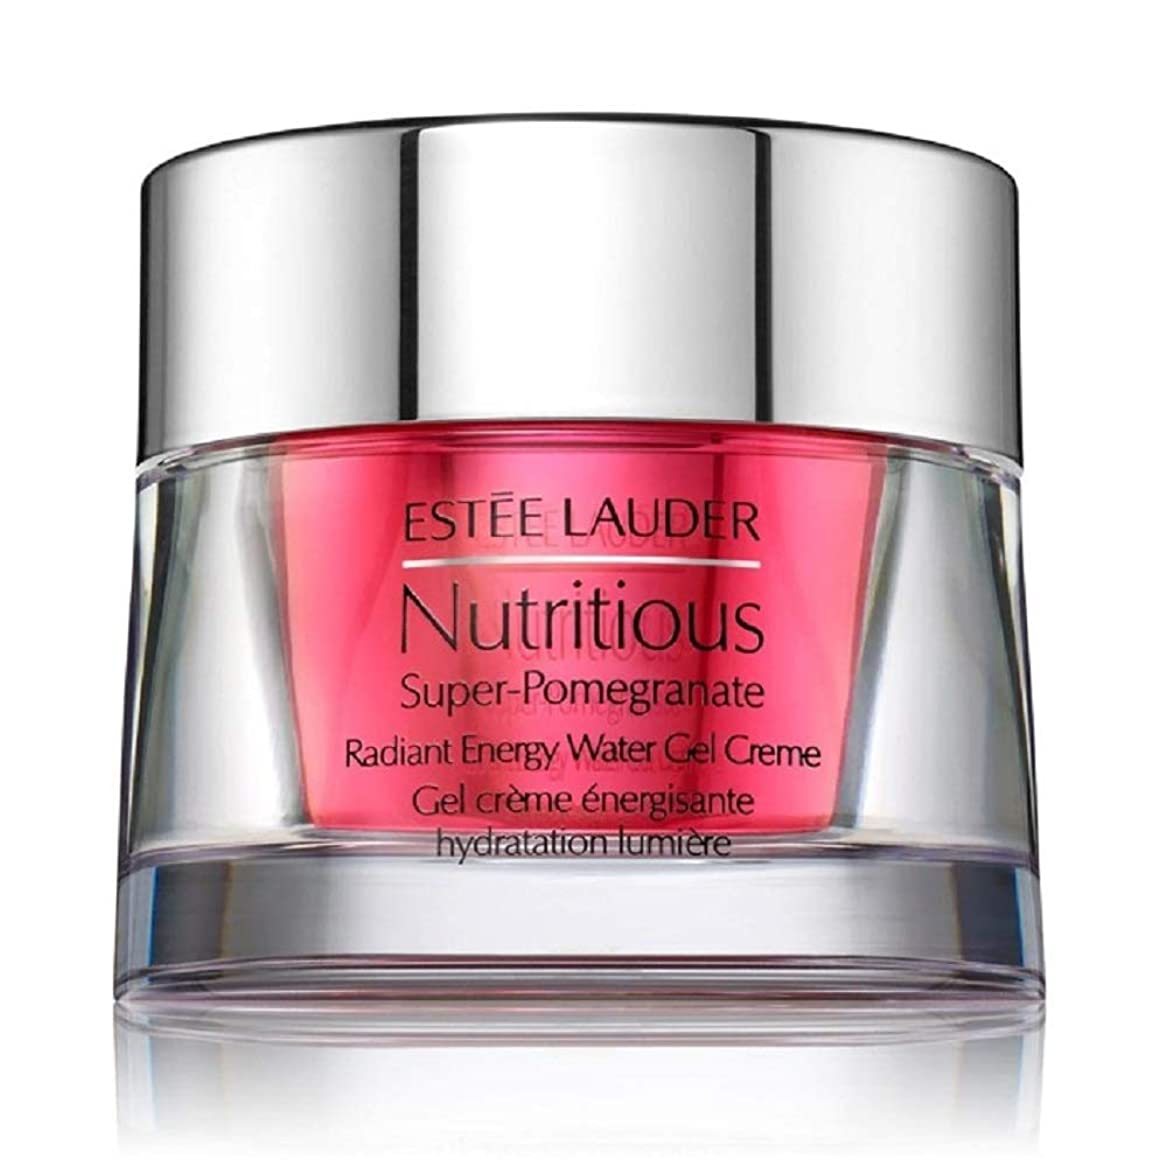 周り失業者外交官エスティローダー Nutritious Super-Pomegranate Radiant Energy Water Gel Creme 50ml/1.7oz並行輸入品